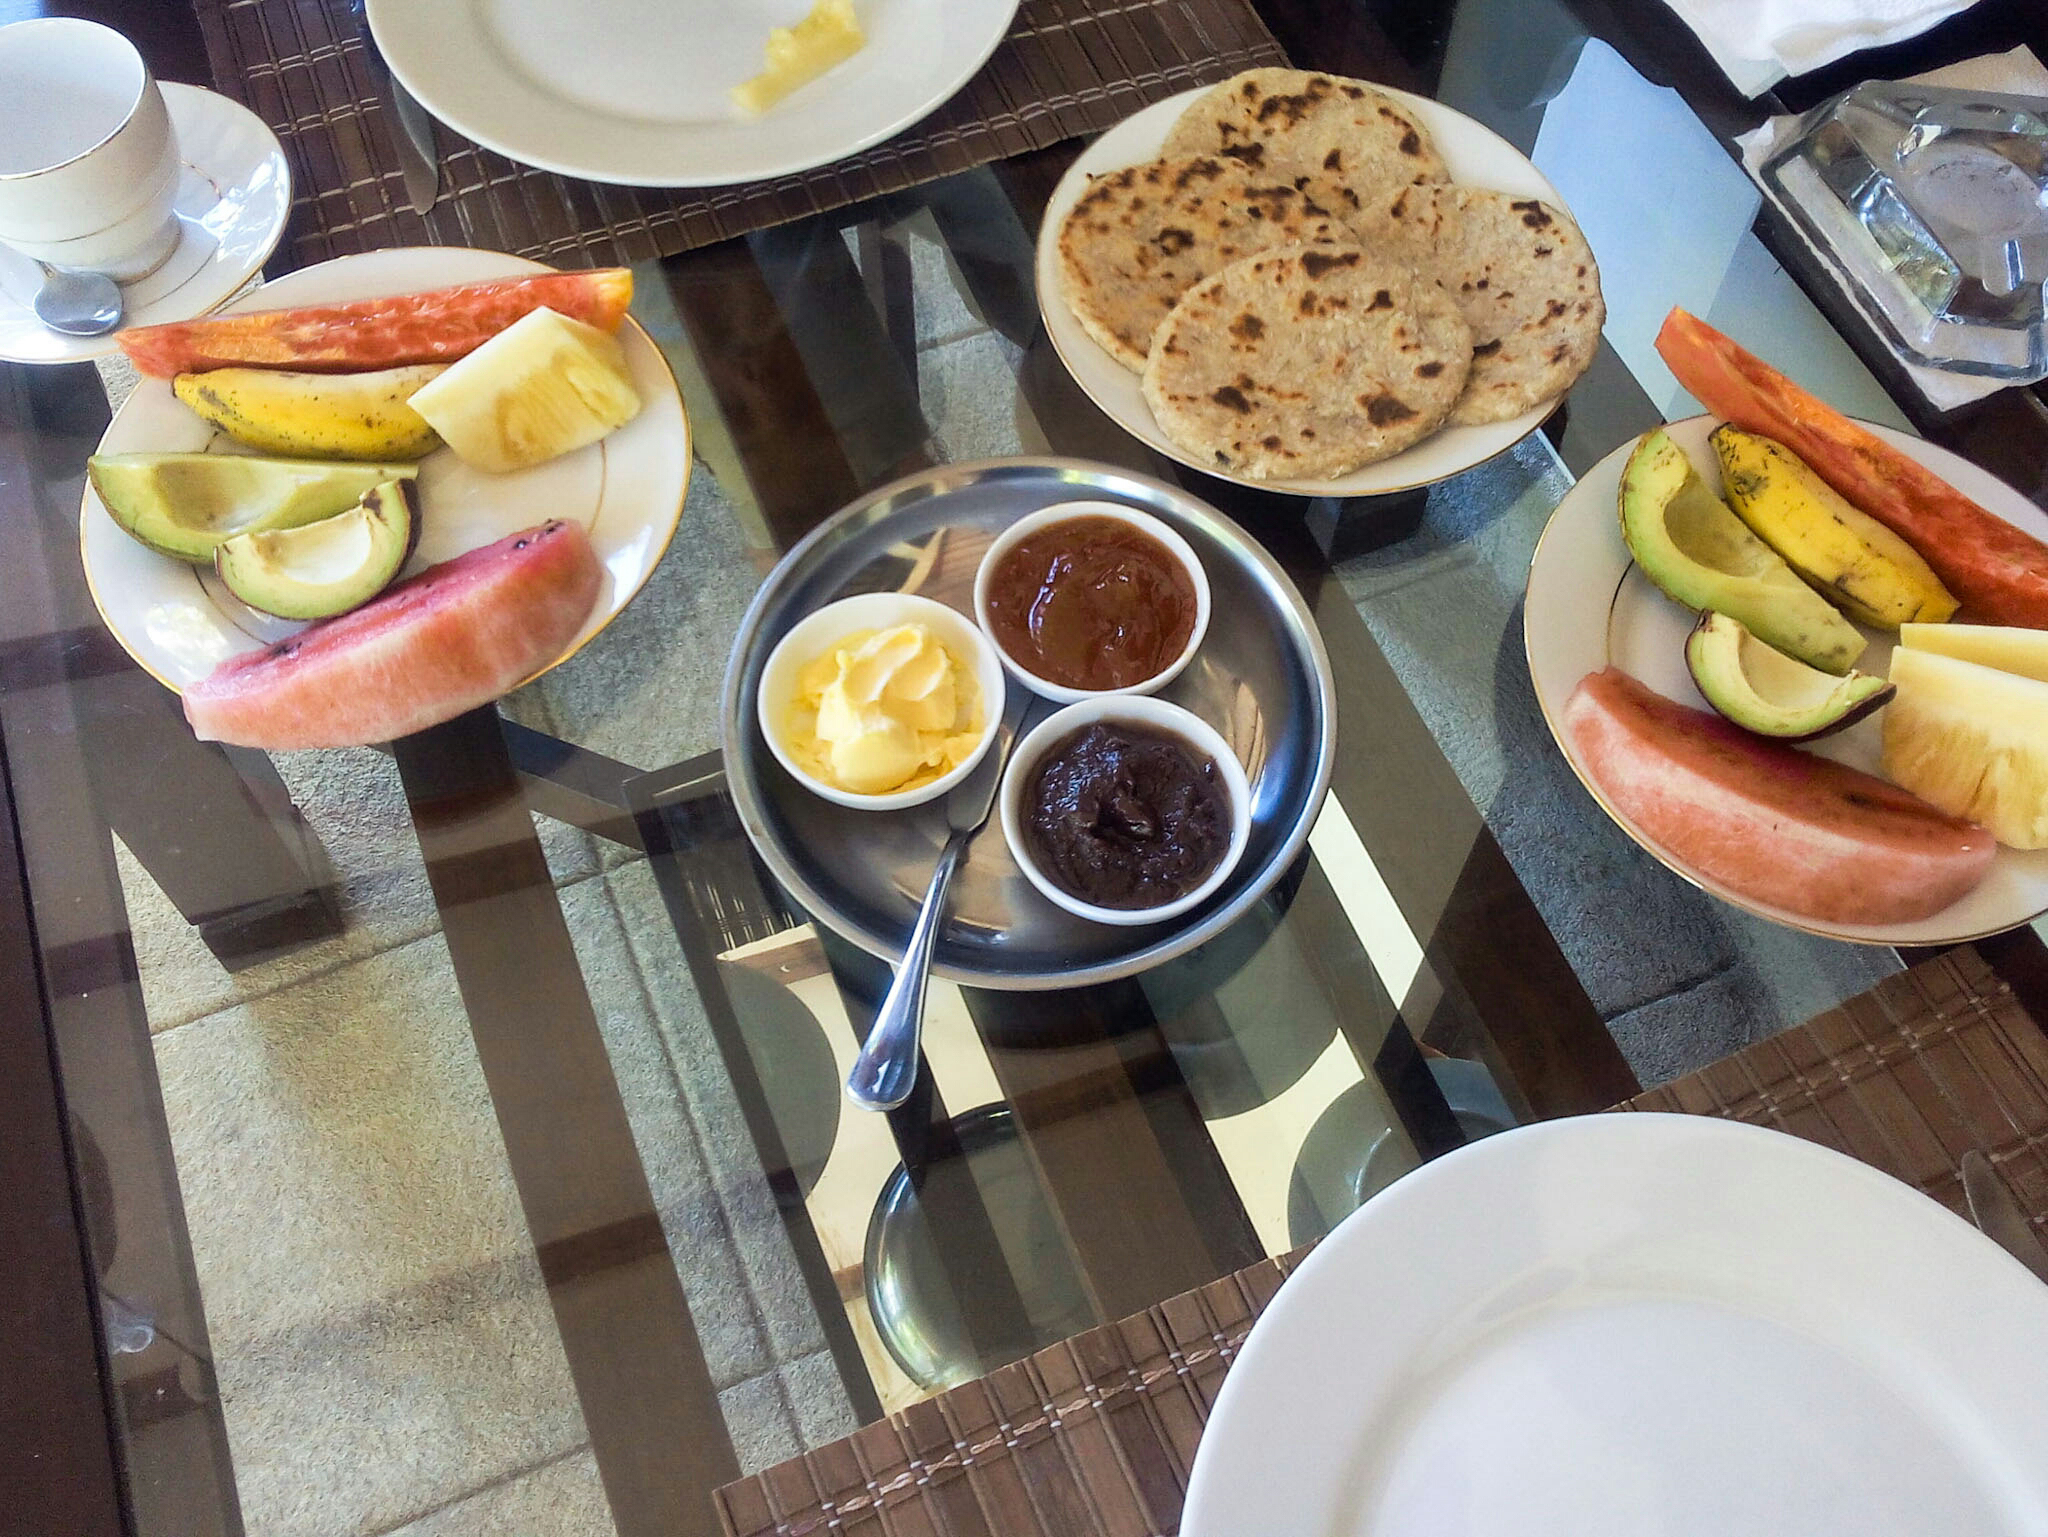 Sri Lankan breakfast: coconut rottis with fresh fruits and homemade jams